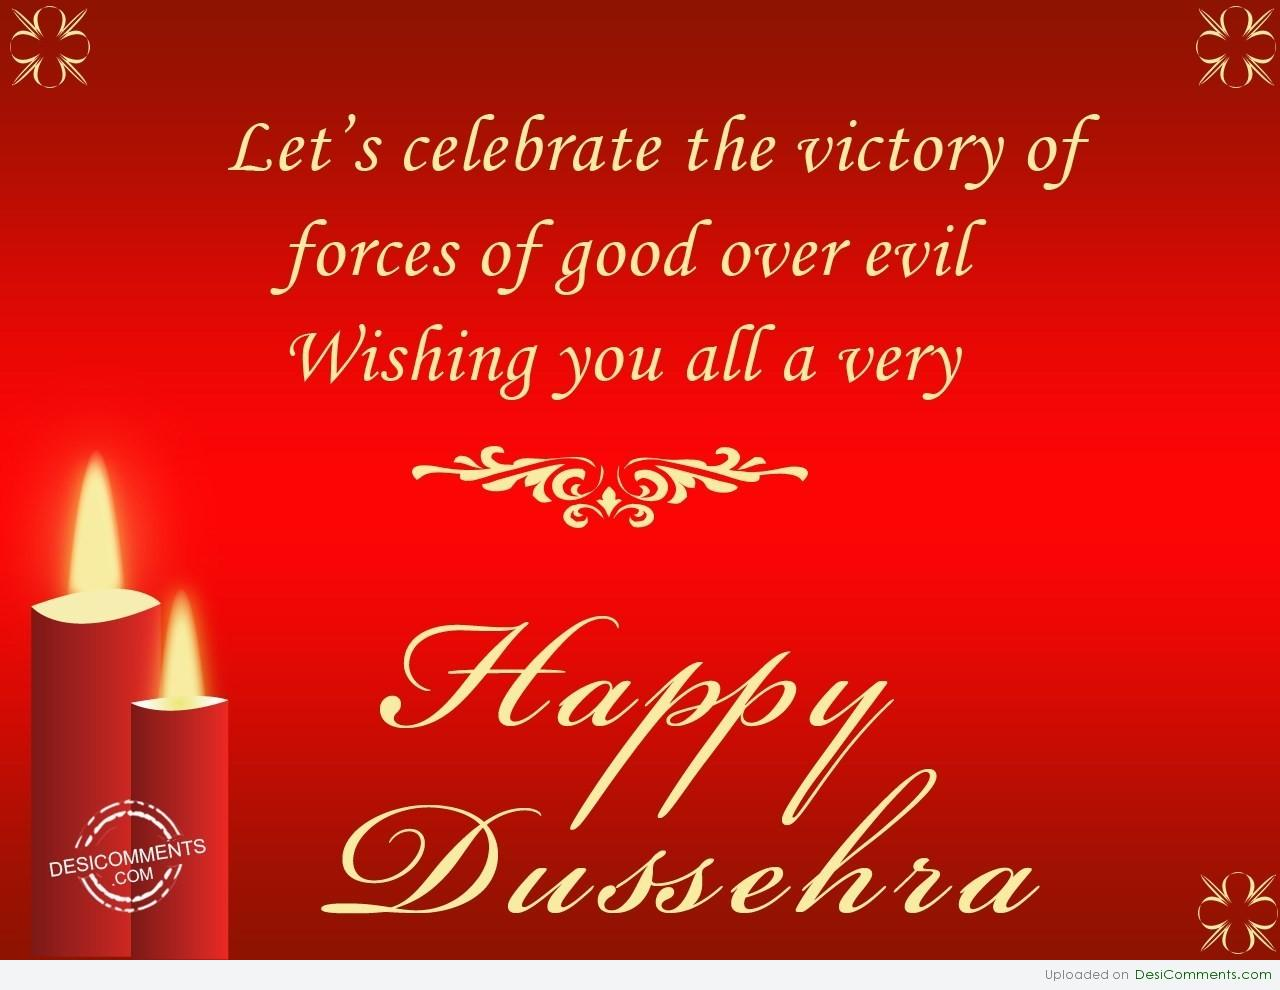 Happy Dussehra Whatsapp Status & Messages